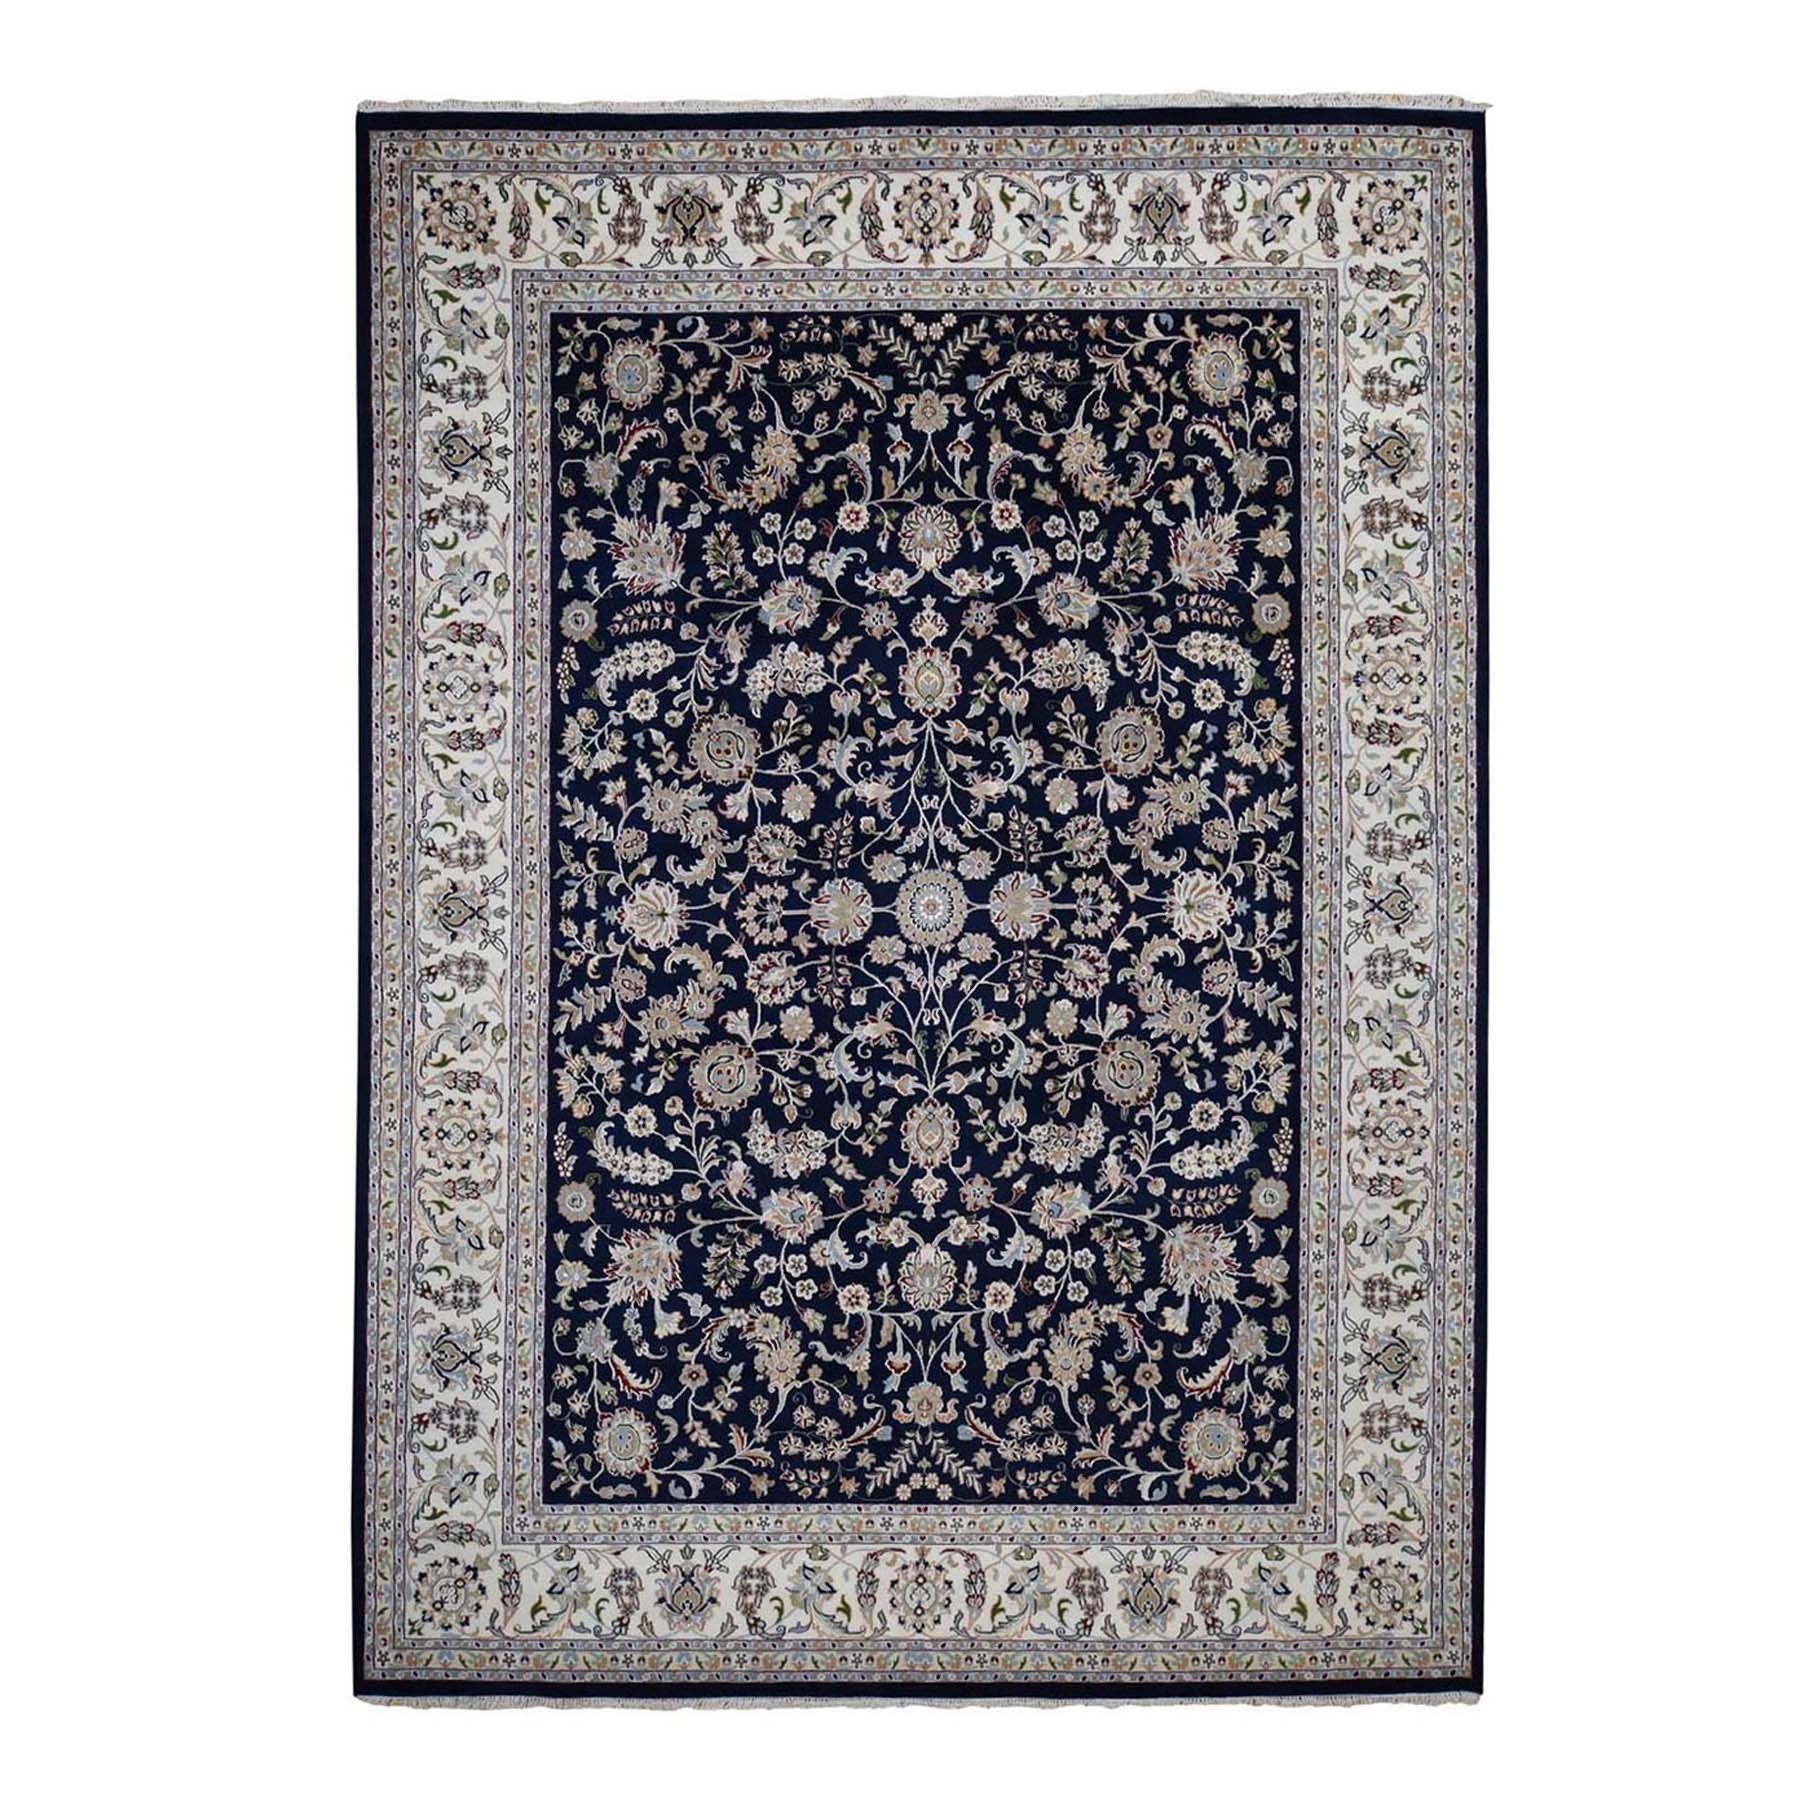 Pirniakan Collection Hand Knotted Blue Rug No: 1119982